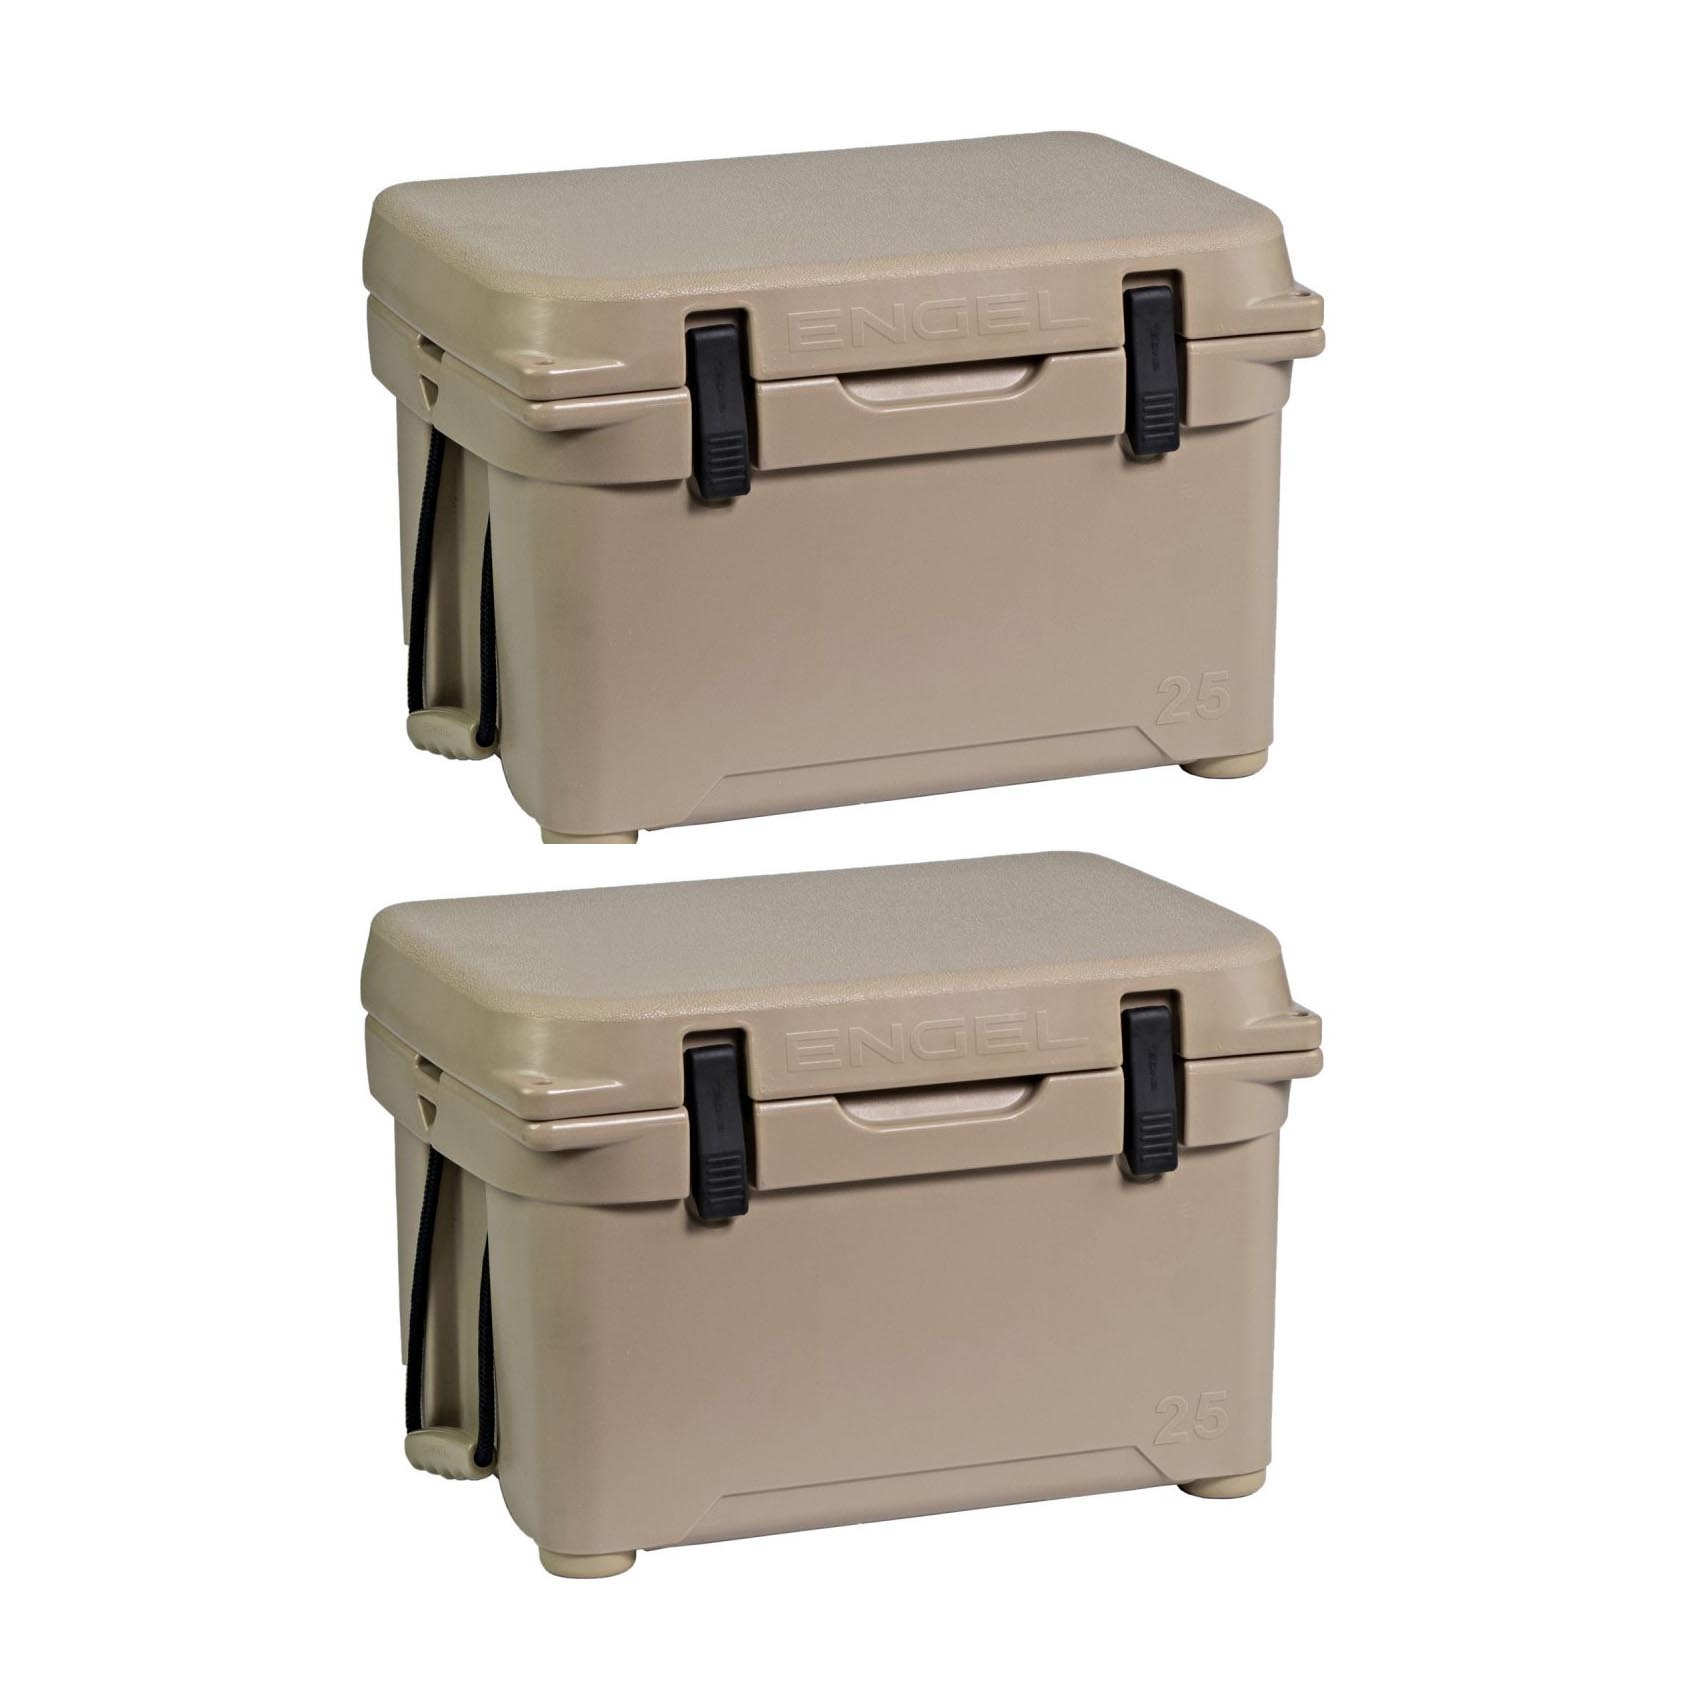 Engel 25 High Performance 5.28 Gallon Roto Molded Ice Chest Cooler, Tan (2 Pack)